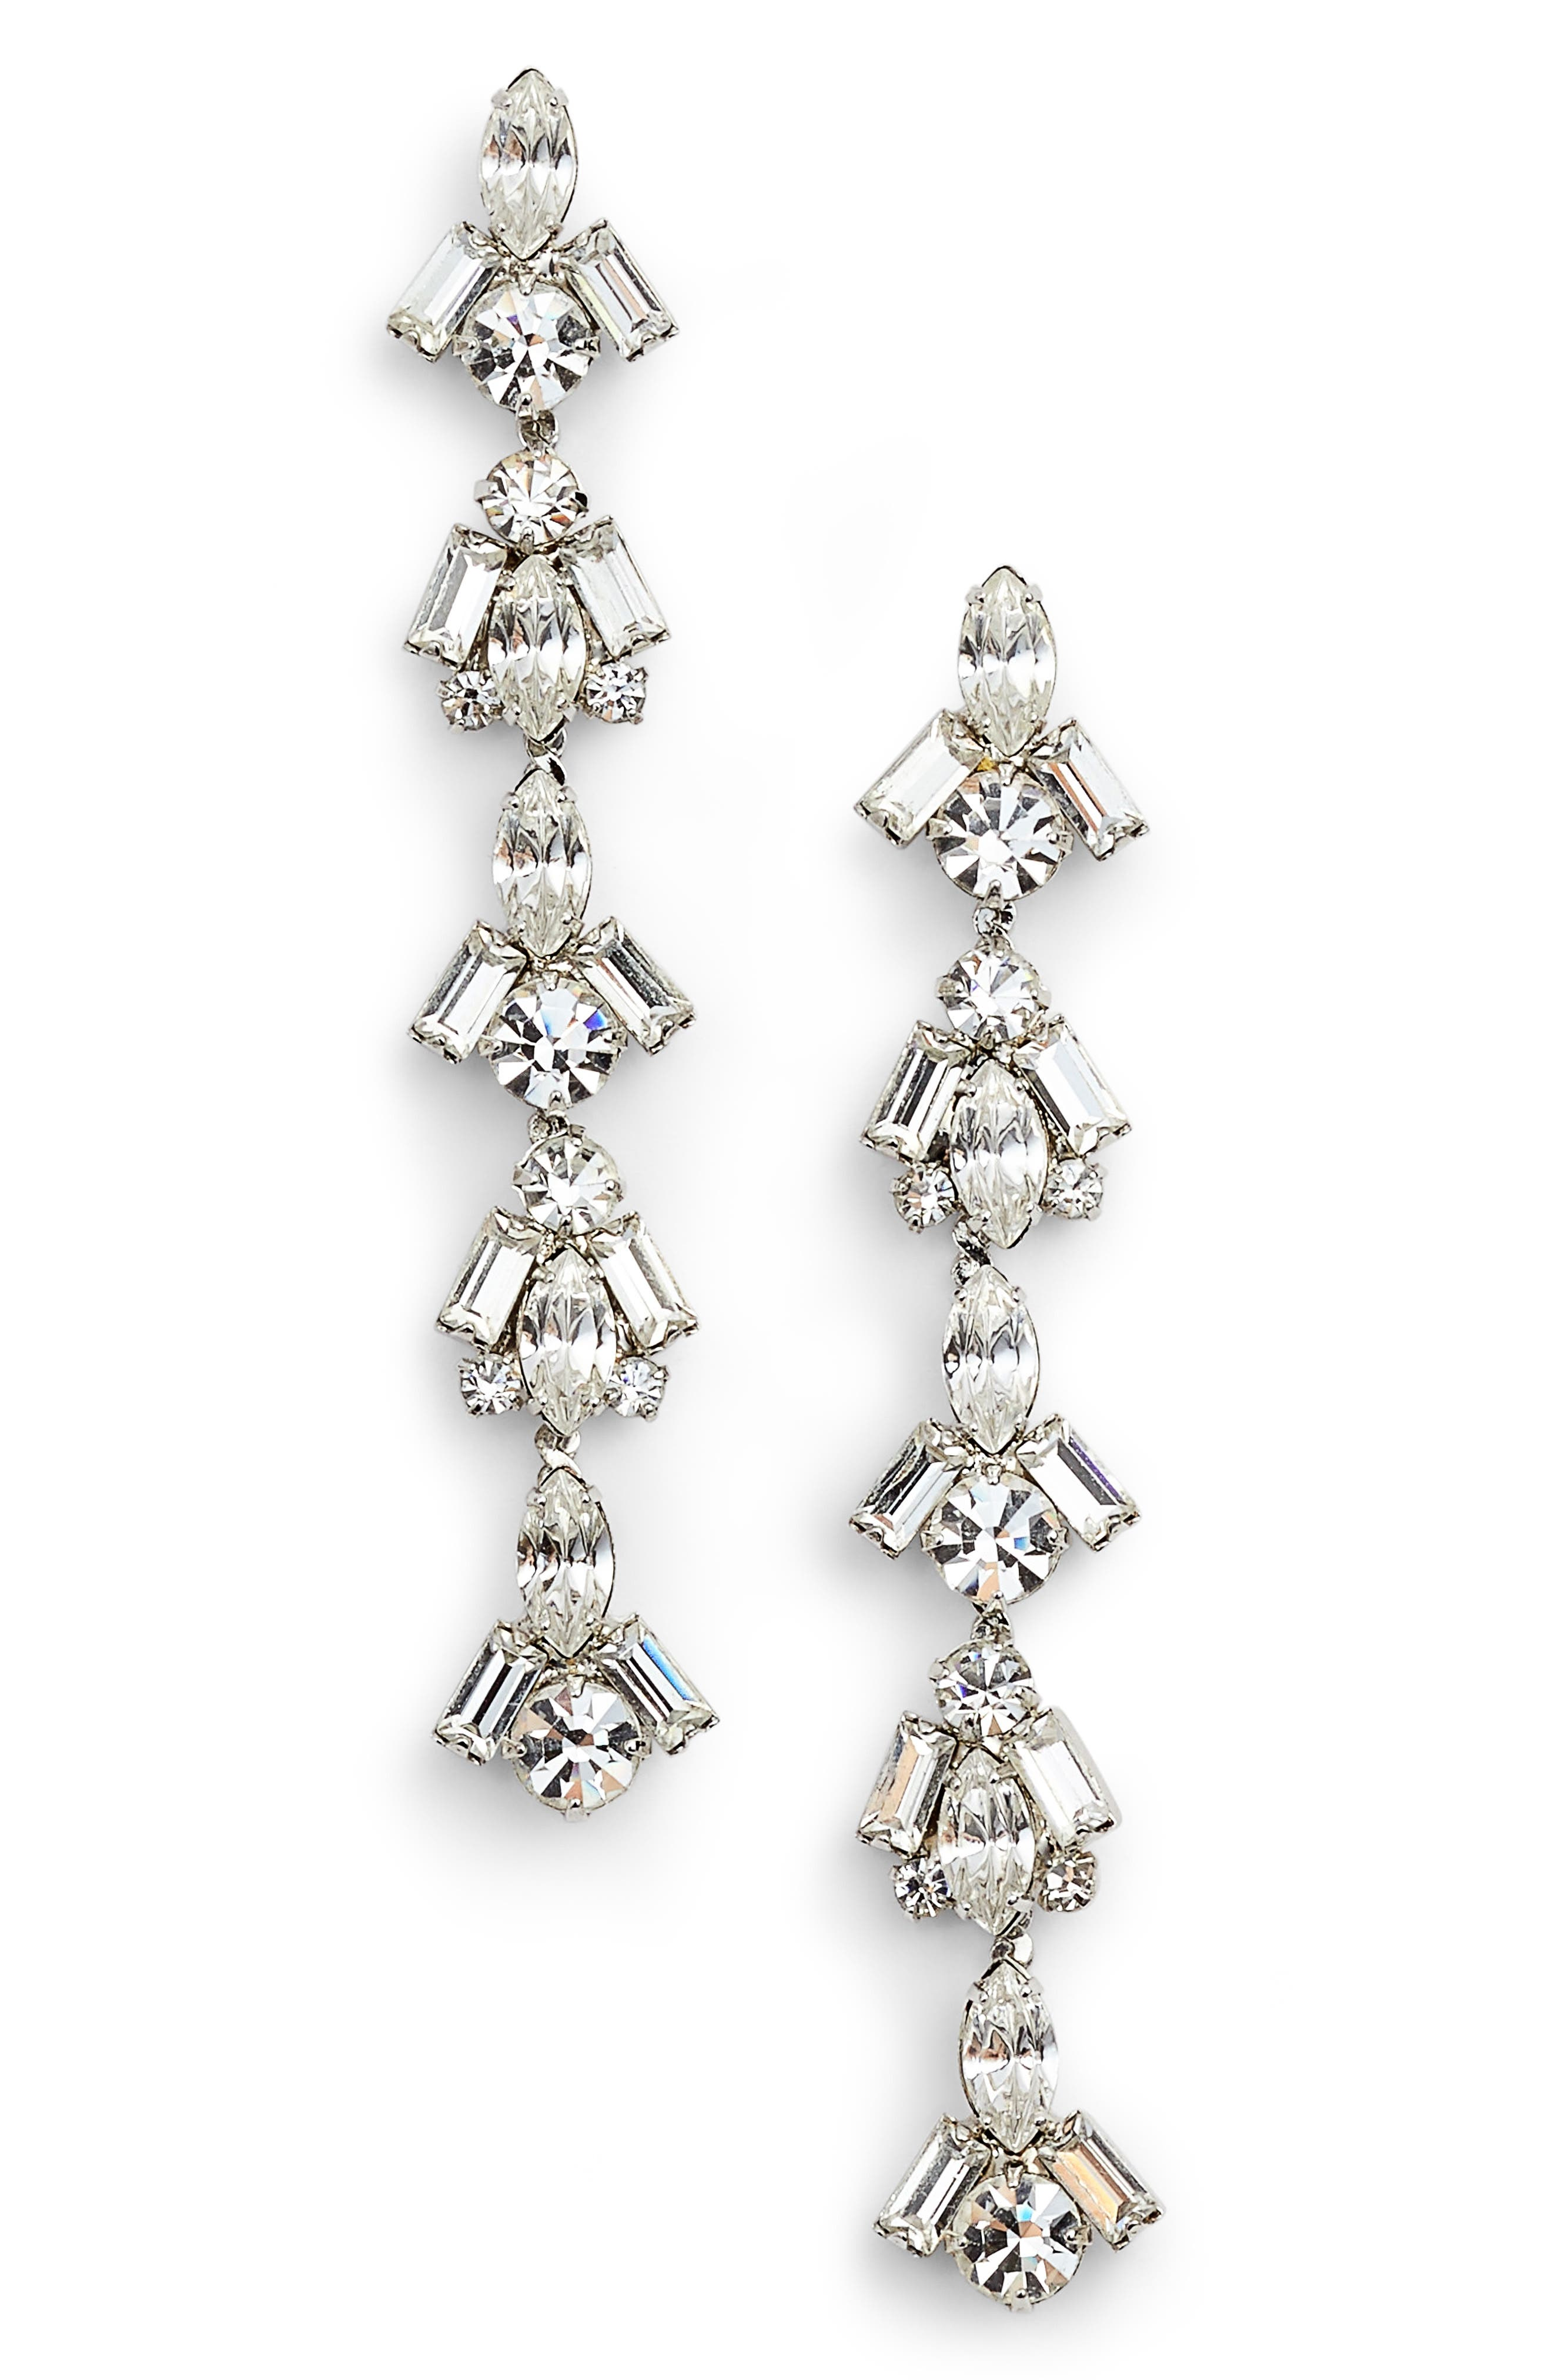 Crystal Linear Drop Earrings,                             Main thumbnail 1, color,                             Silver